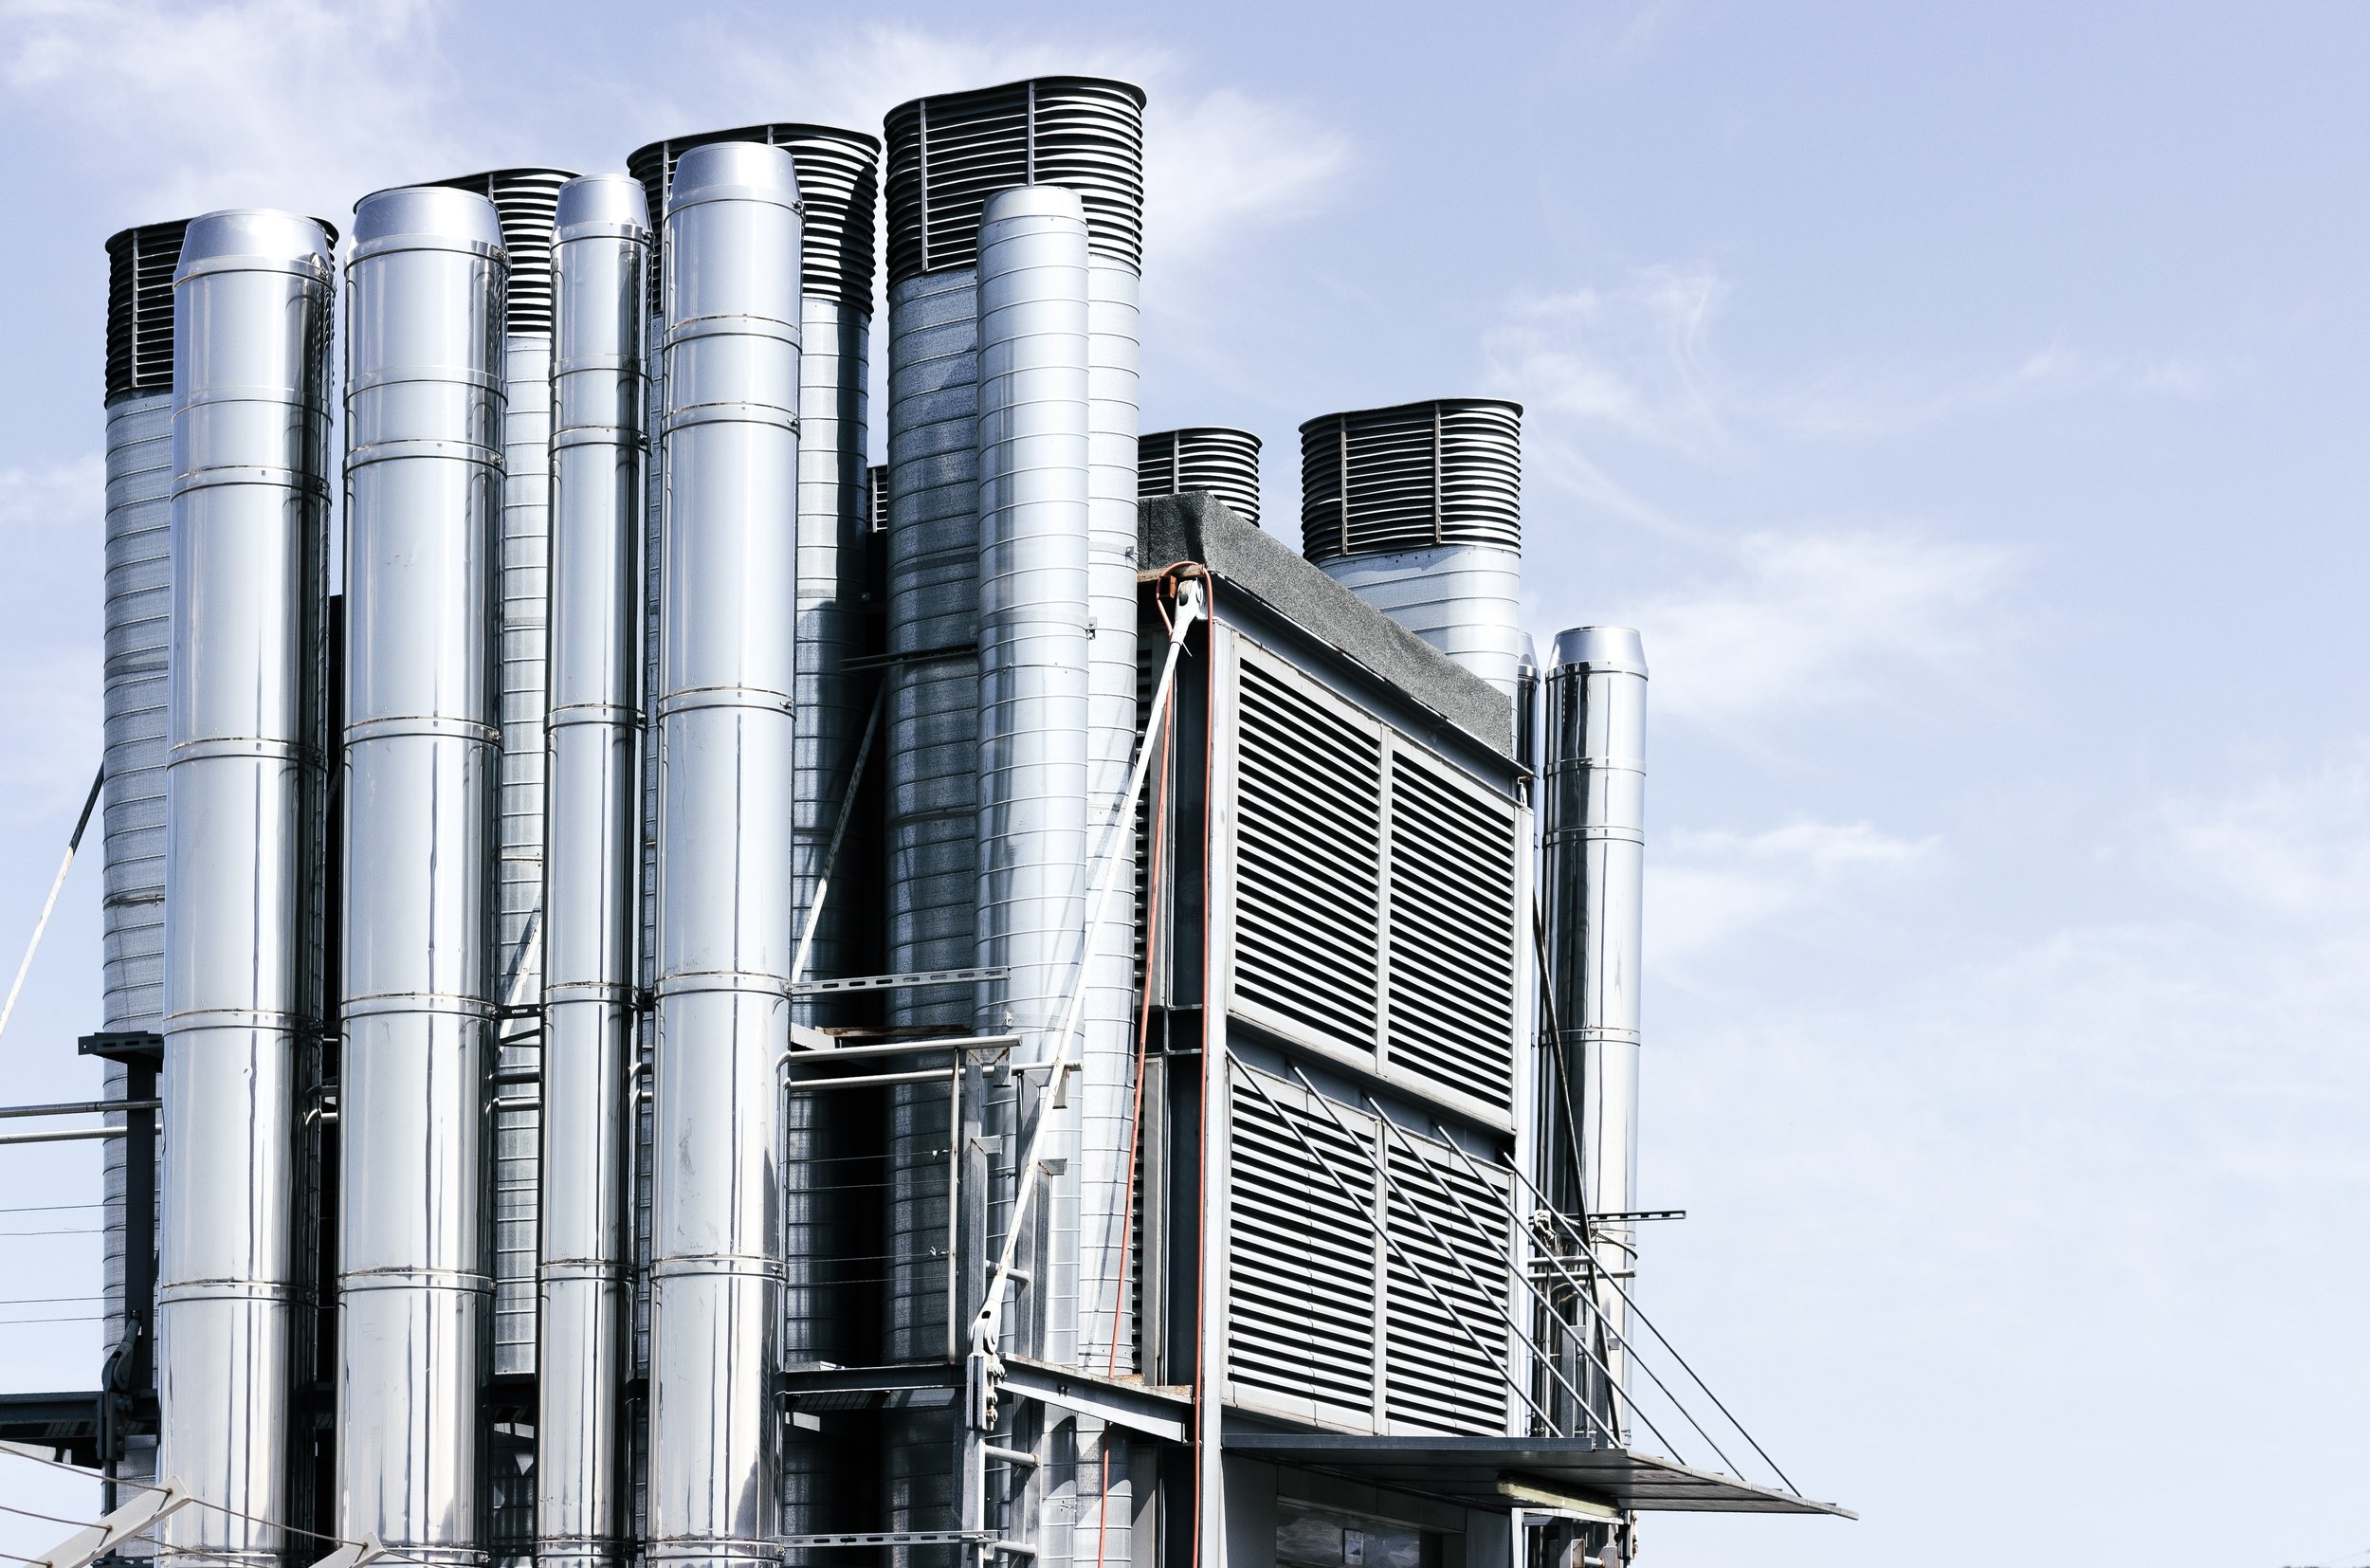 Ag-Industrial - We provide building solutions for all sectors of agriculture - nuts, seeds, grains, oils, liquids, packaging - by constructing large metal buildings, steel structures, concrete structures, processing facilities, loading docks, conveyance of commodities, and more.